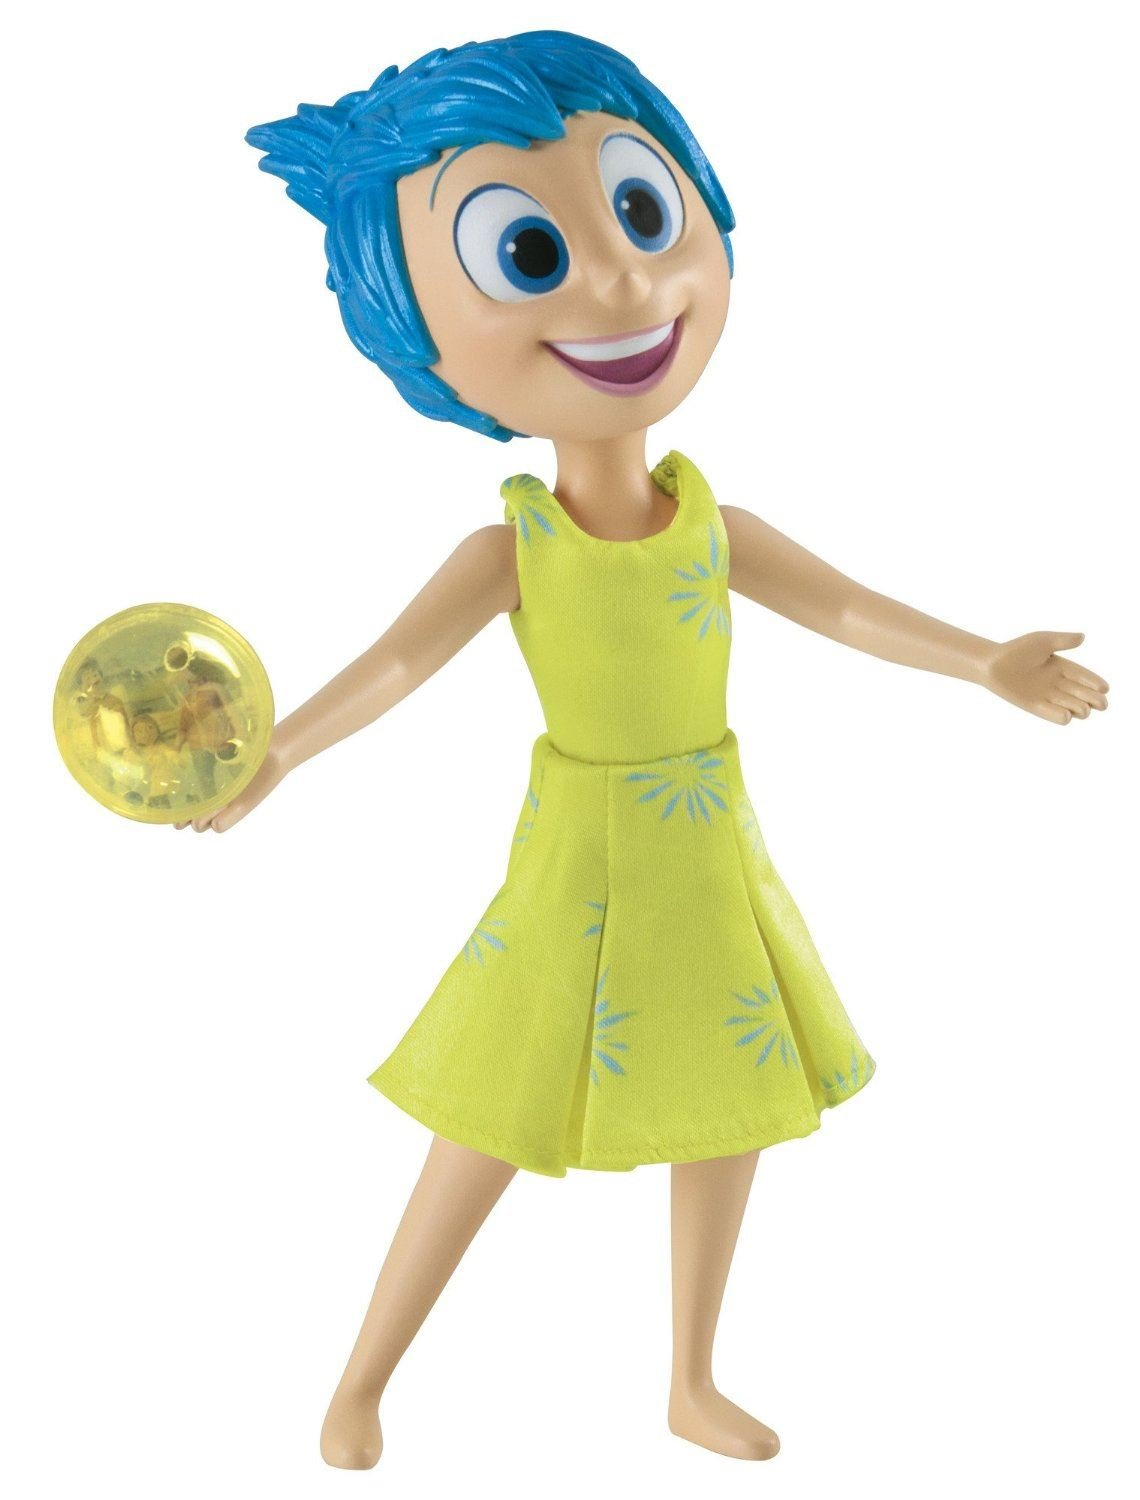 Disney Pixar Inside Out Large Figure, Joy By Tomy HST